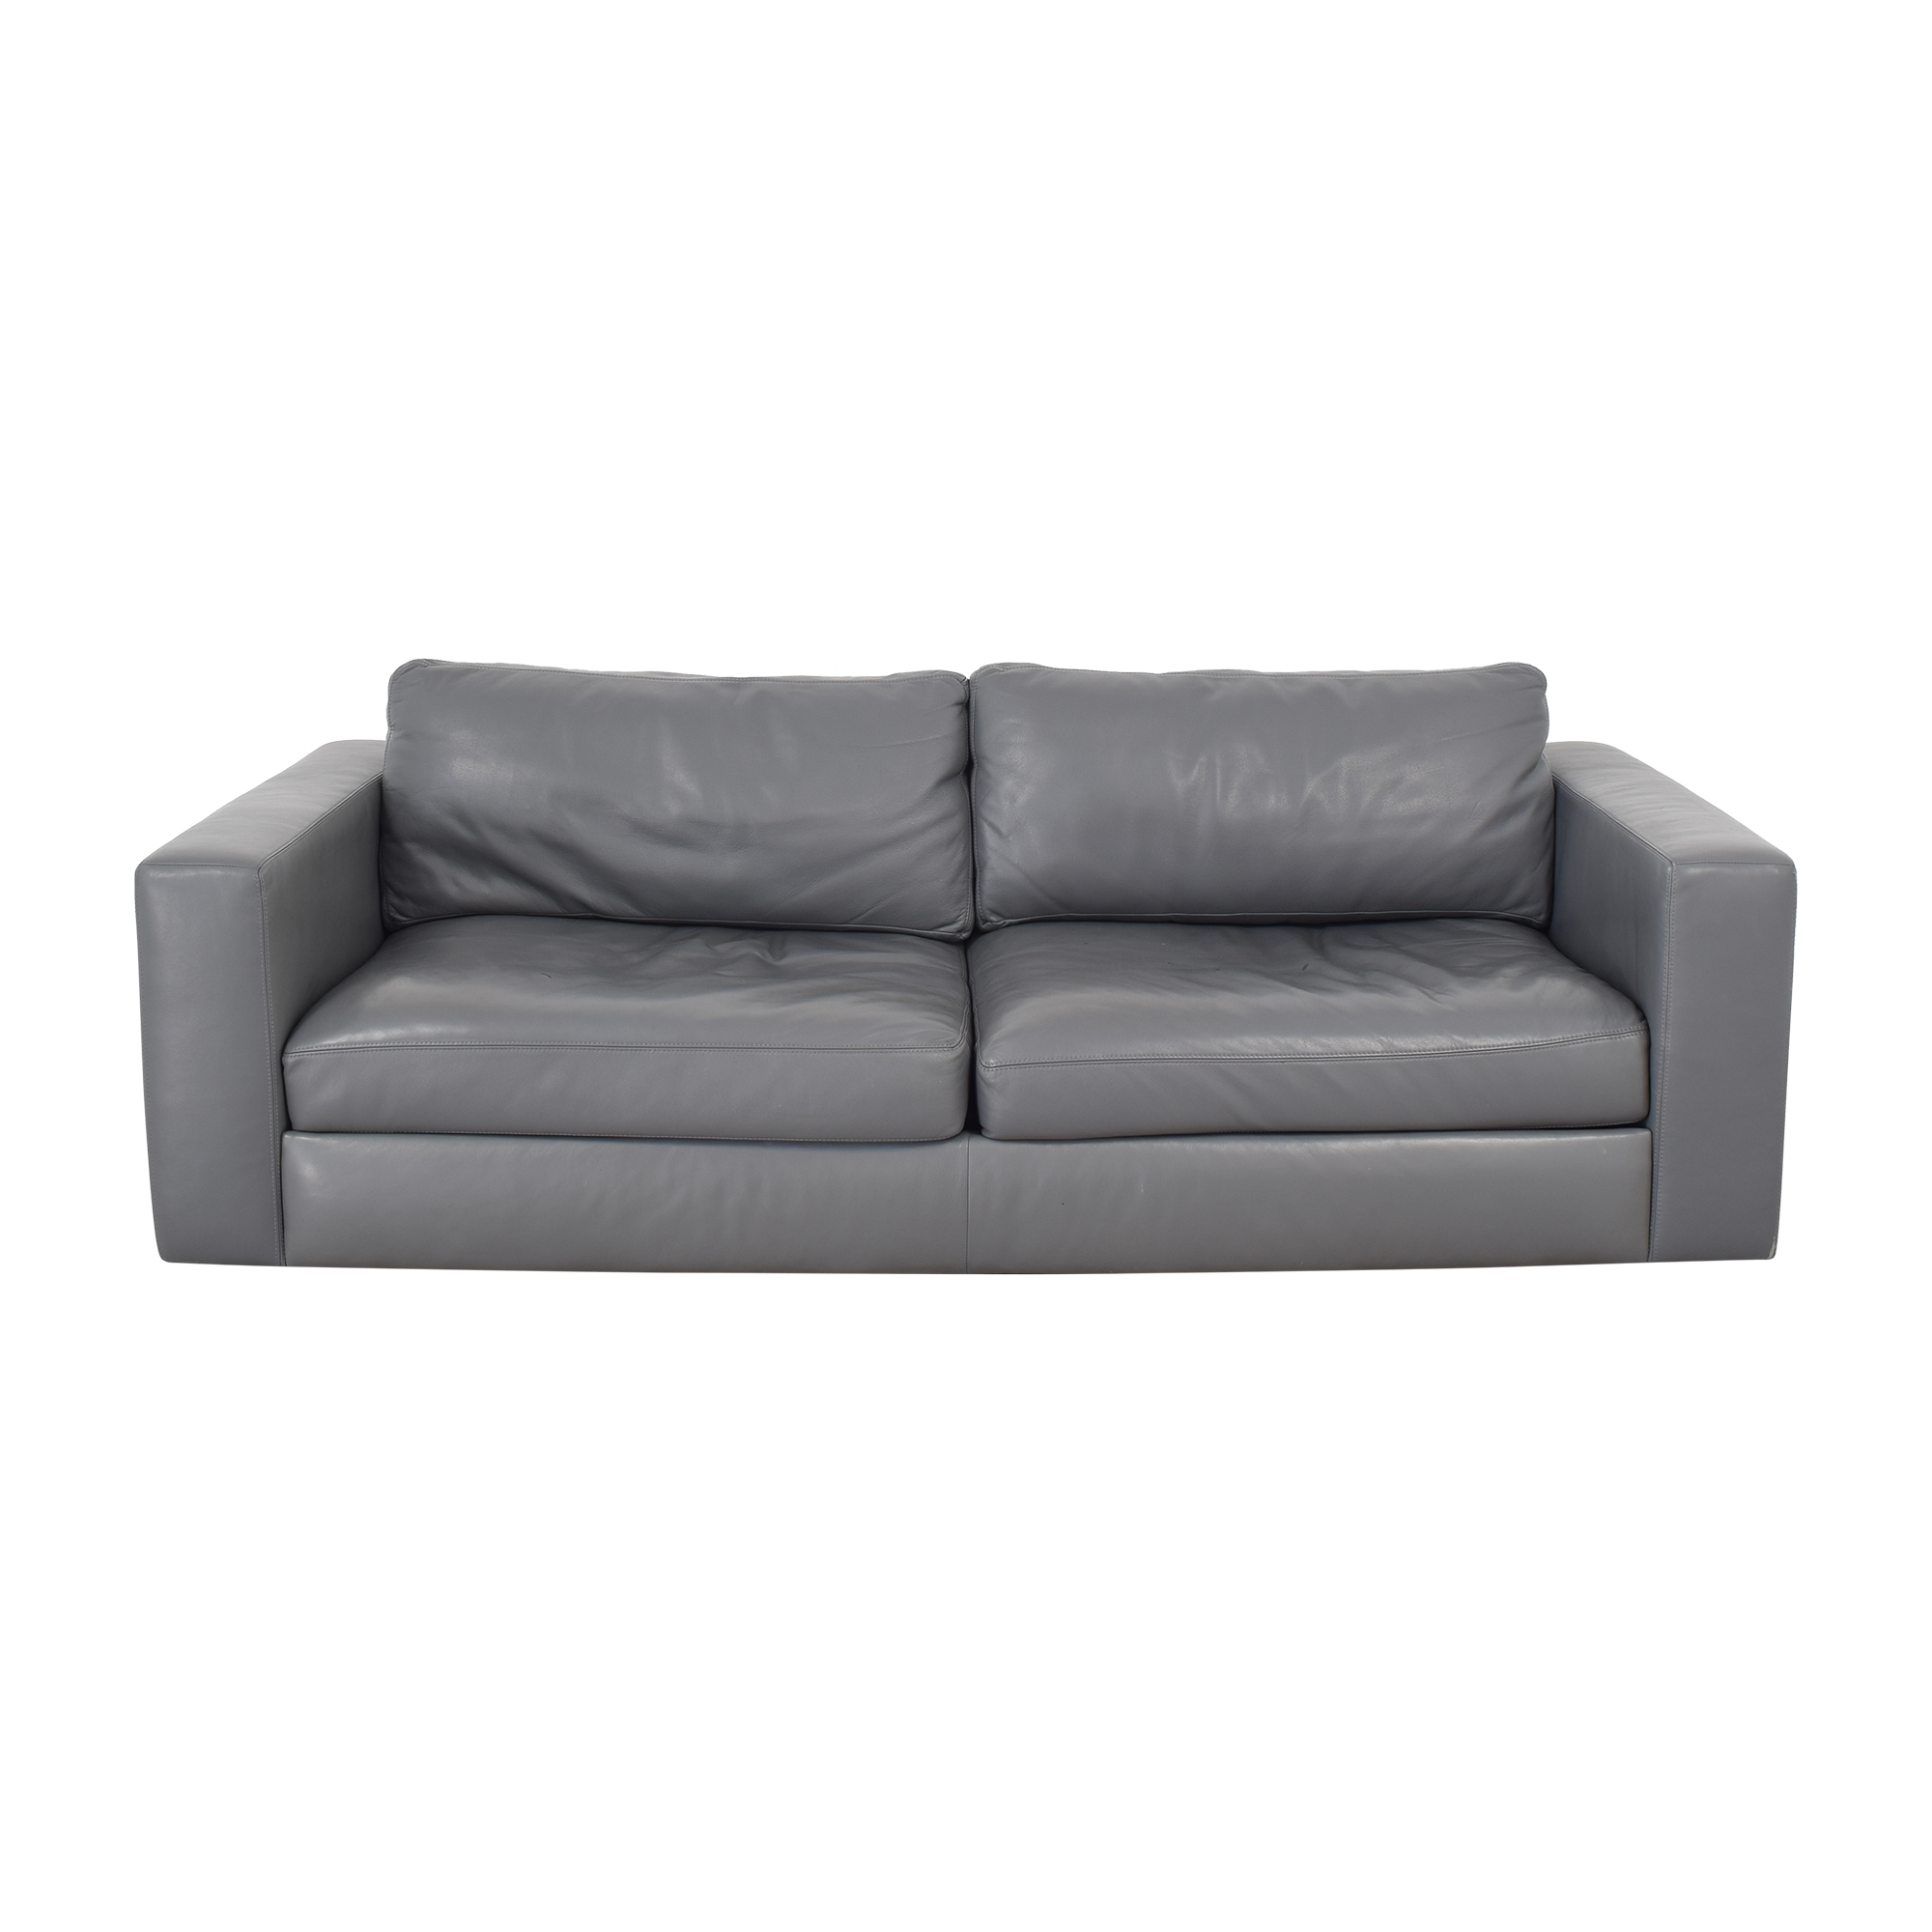 Design Within Reach Reid Leather Sofa sale